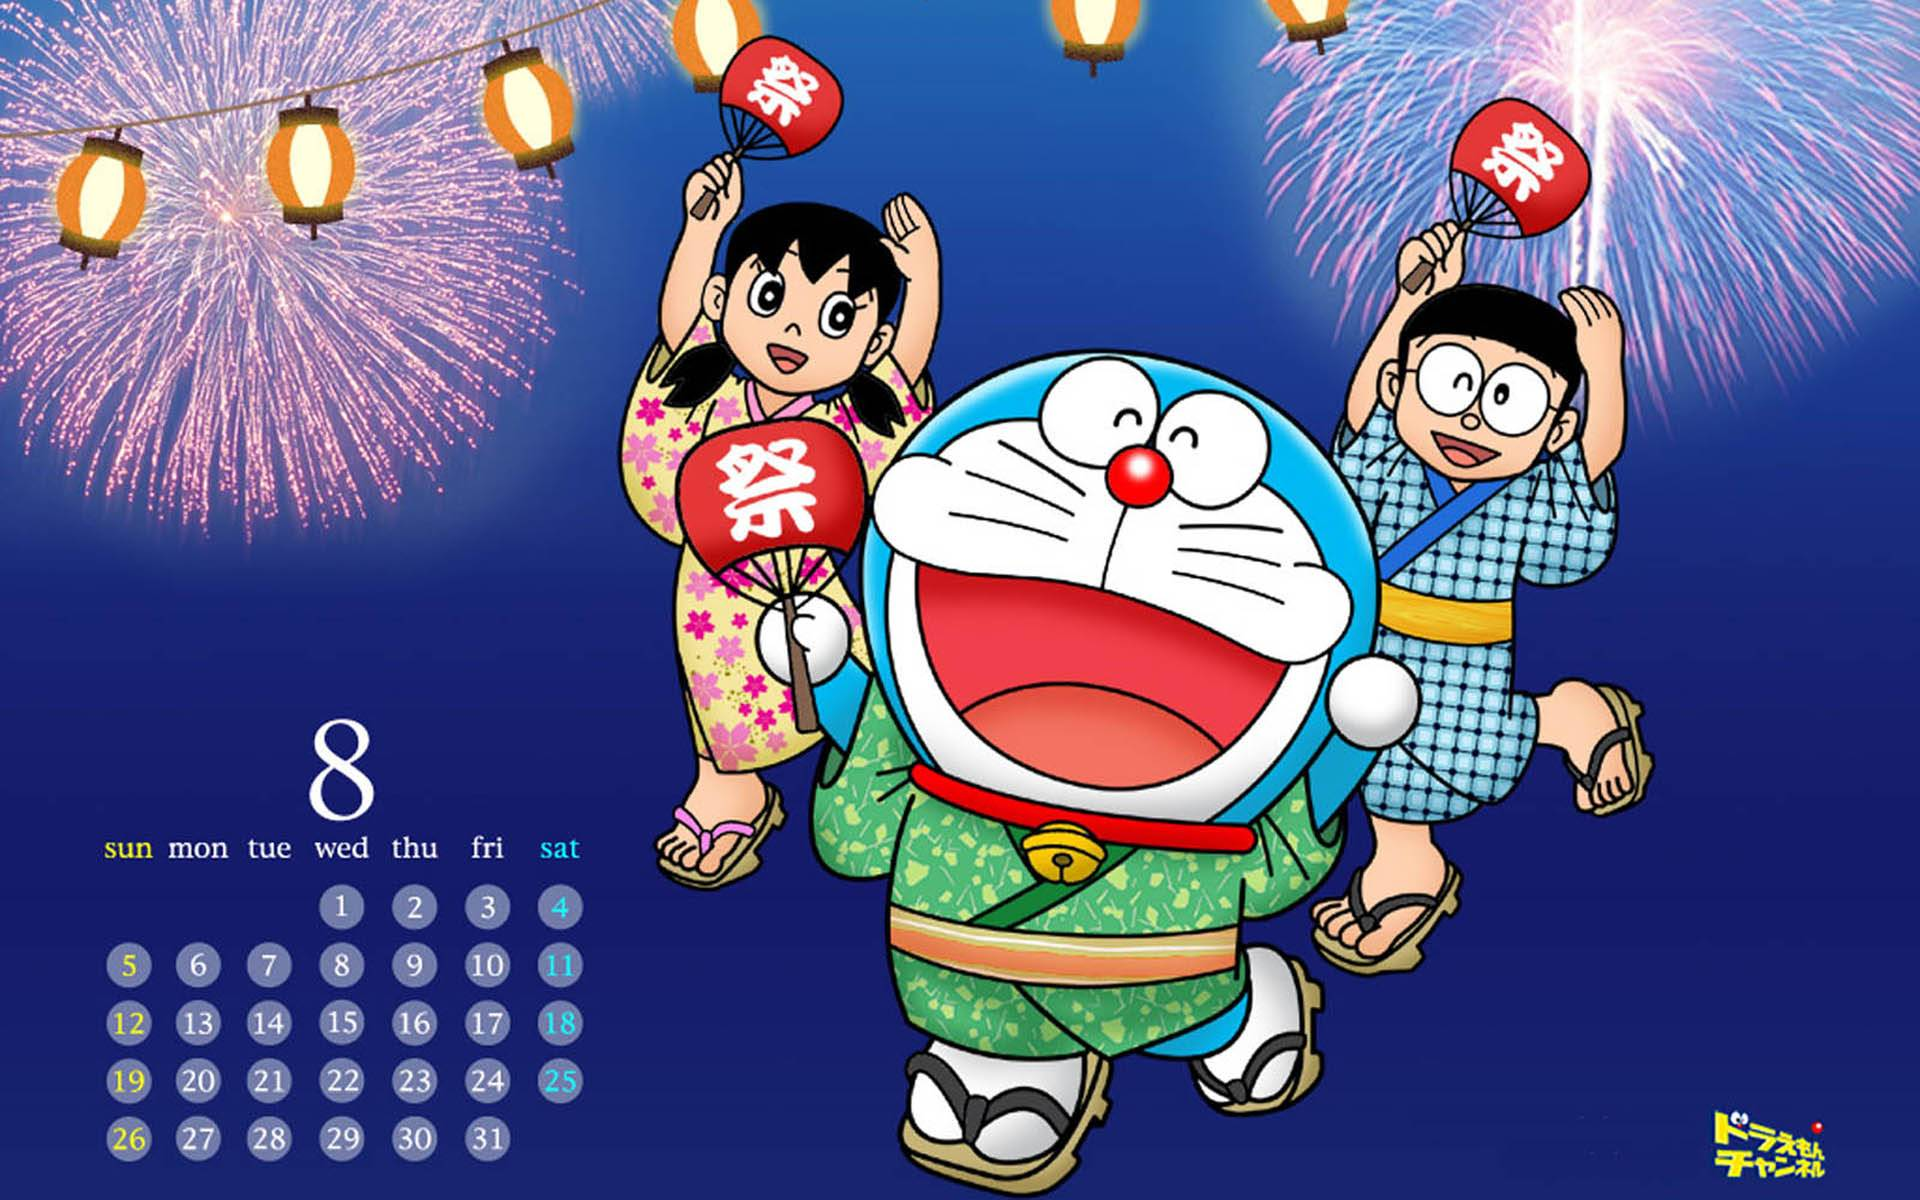 Doraemon 3d Wallpaper Hd - Free Android Application - Createapk.com